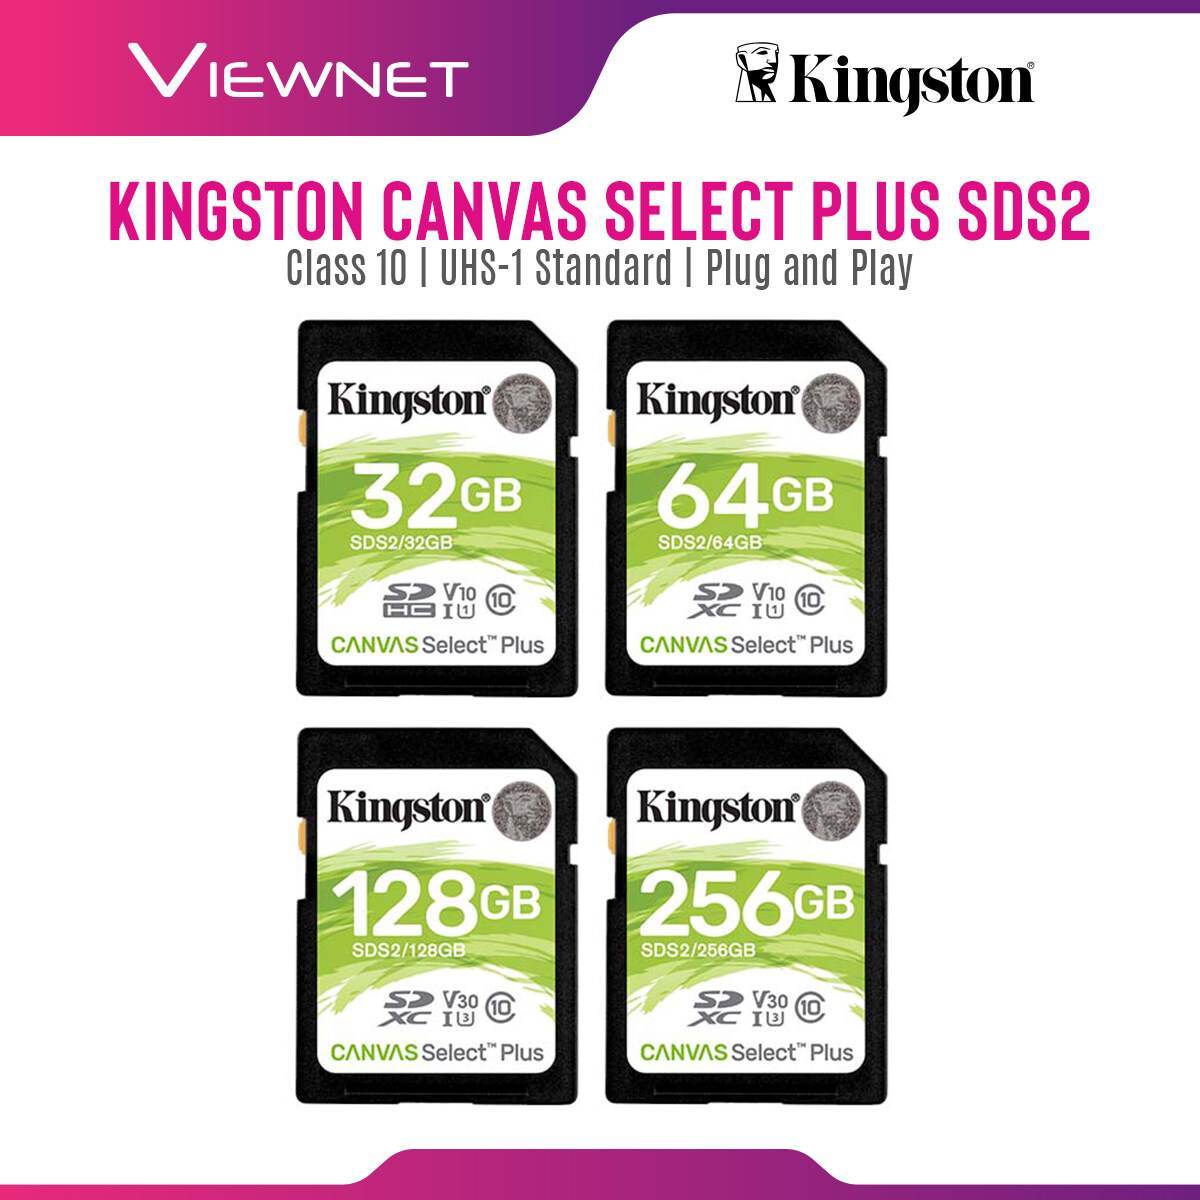 Kingston Canvas Select Plus SD Card with Class 10, USH-1 Standard, Full HD Capture,  Plug and Play (32GB / 64GB / 128GB / 256GB)